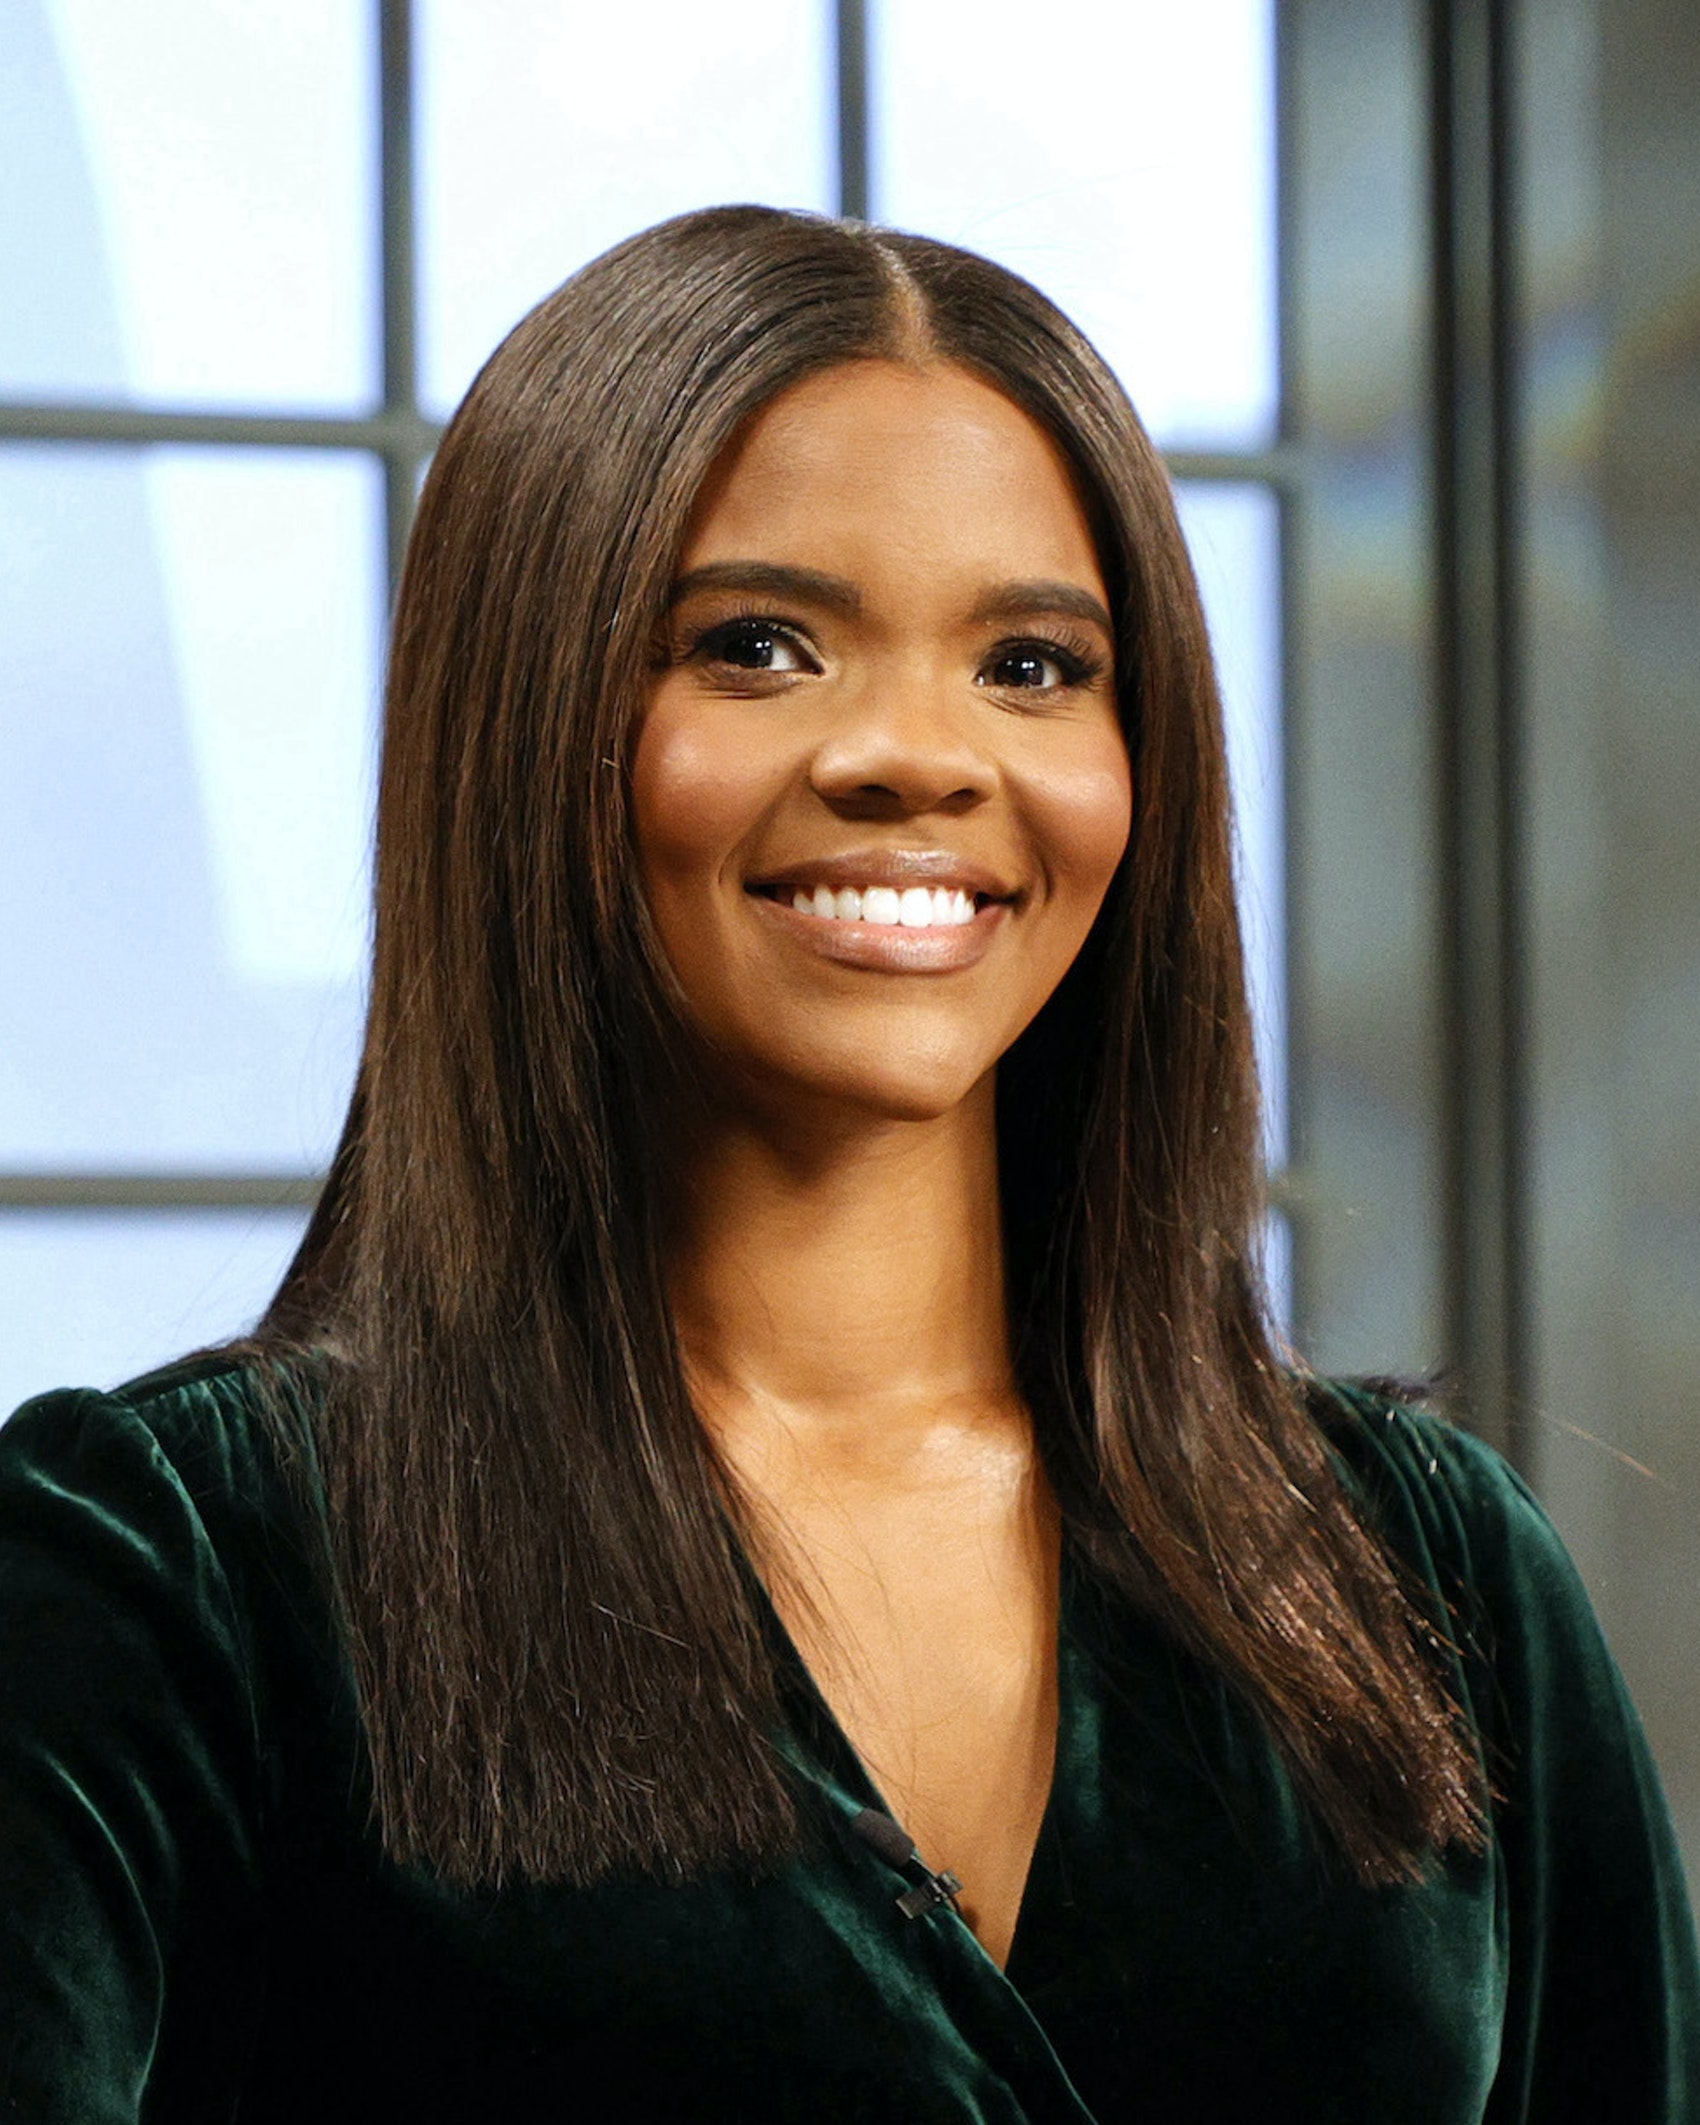 Author & host Candace Owens is seen on the set of